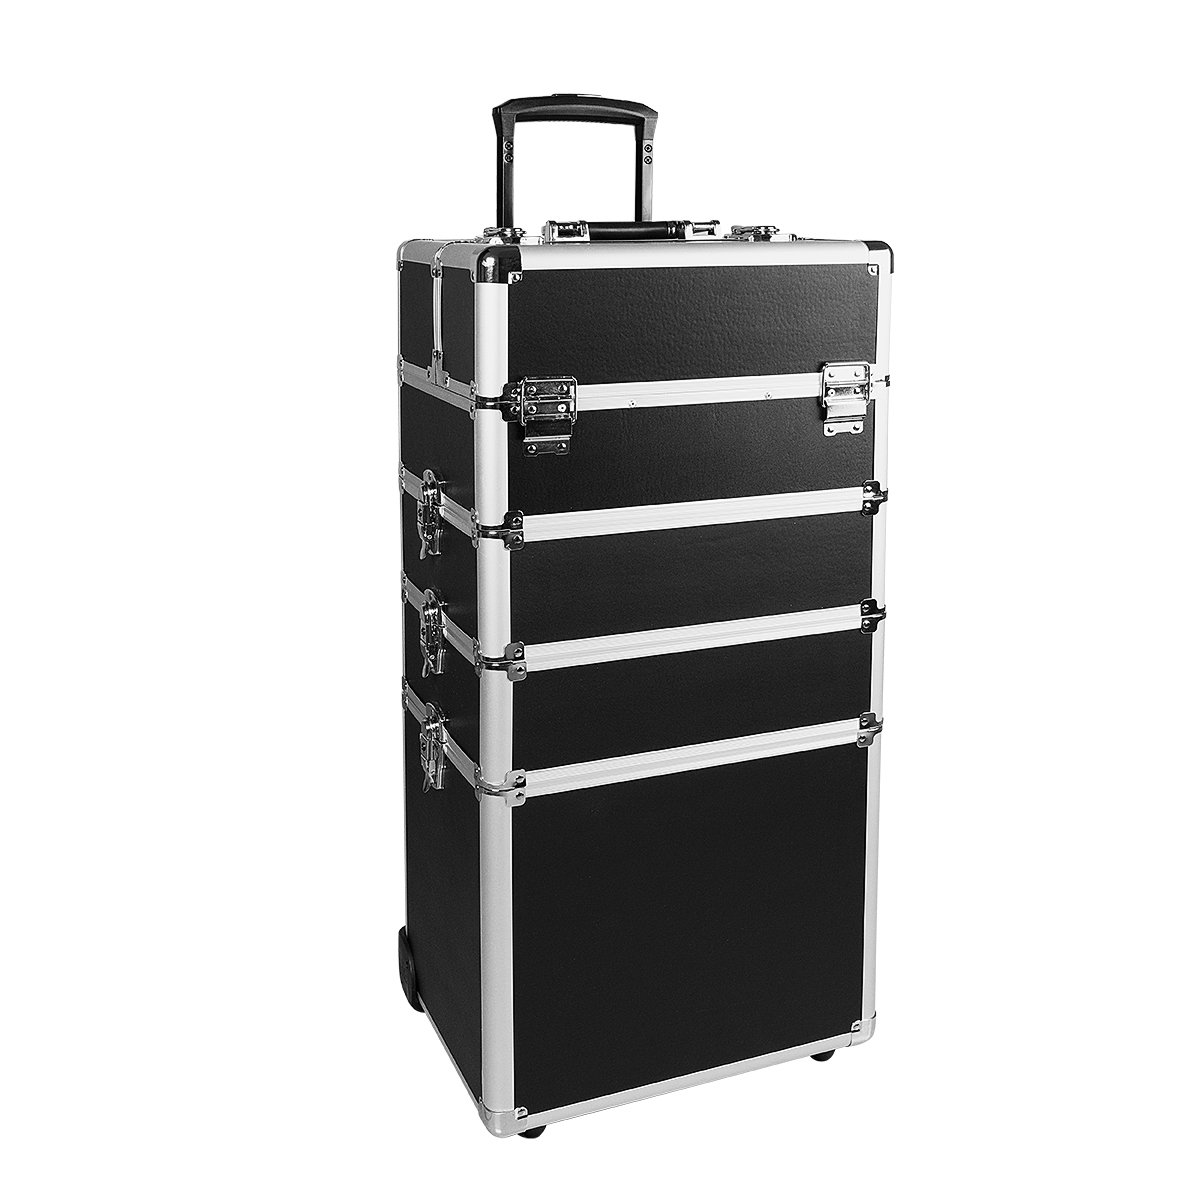 Makeup Train Case 4 in 1 Professional Cosmetics Rolling Organizer Aluminum Frame and Folding Trays (10.4×13.4×28.7 in,Black)